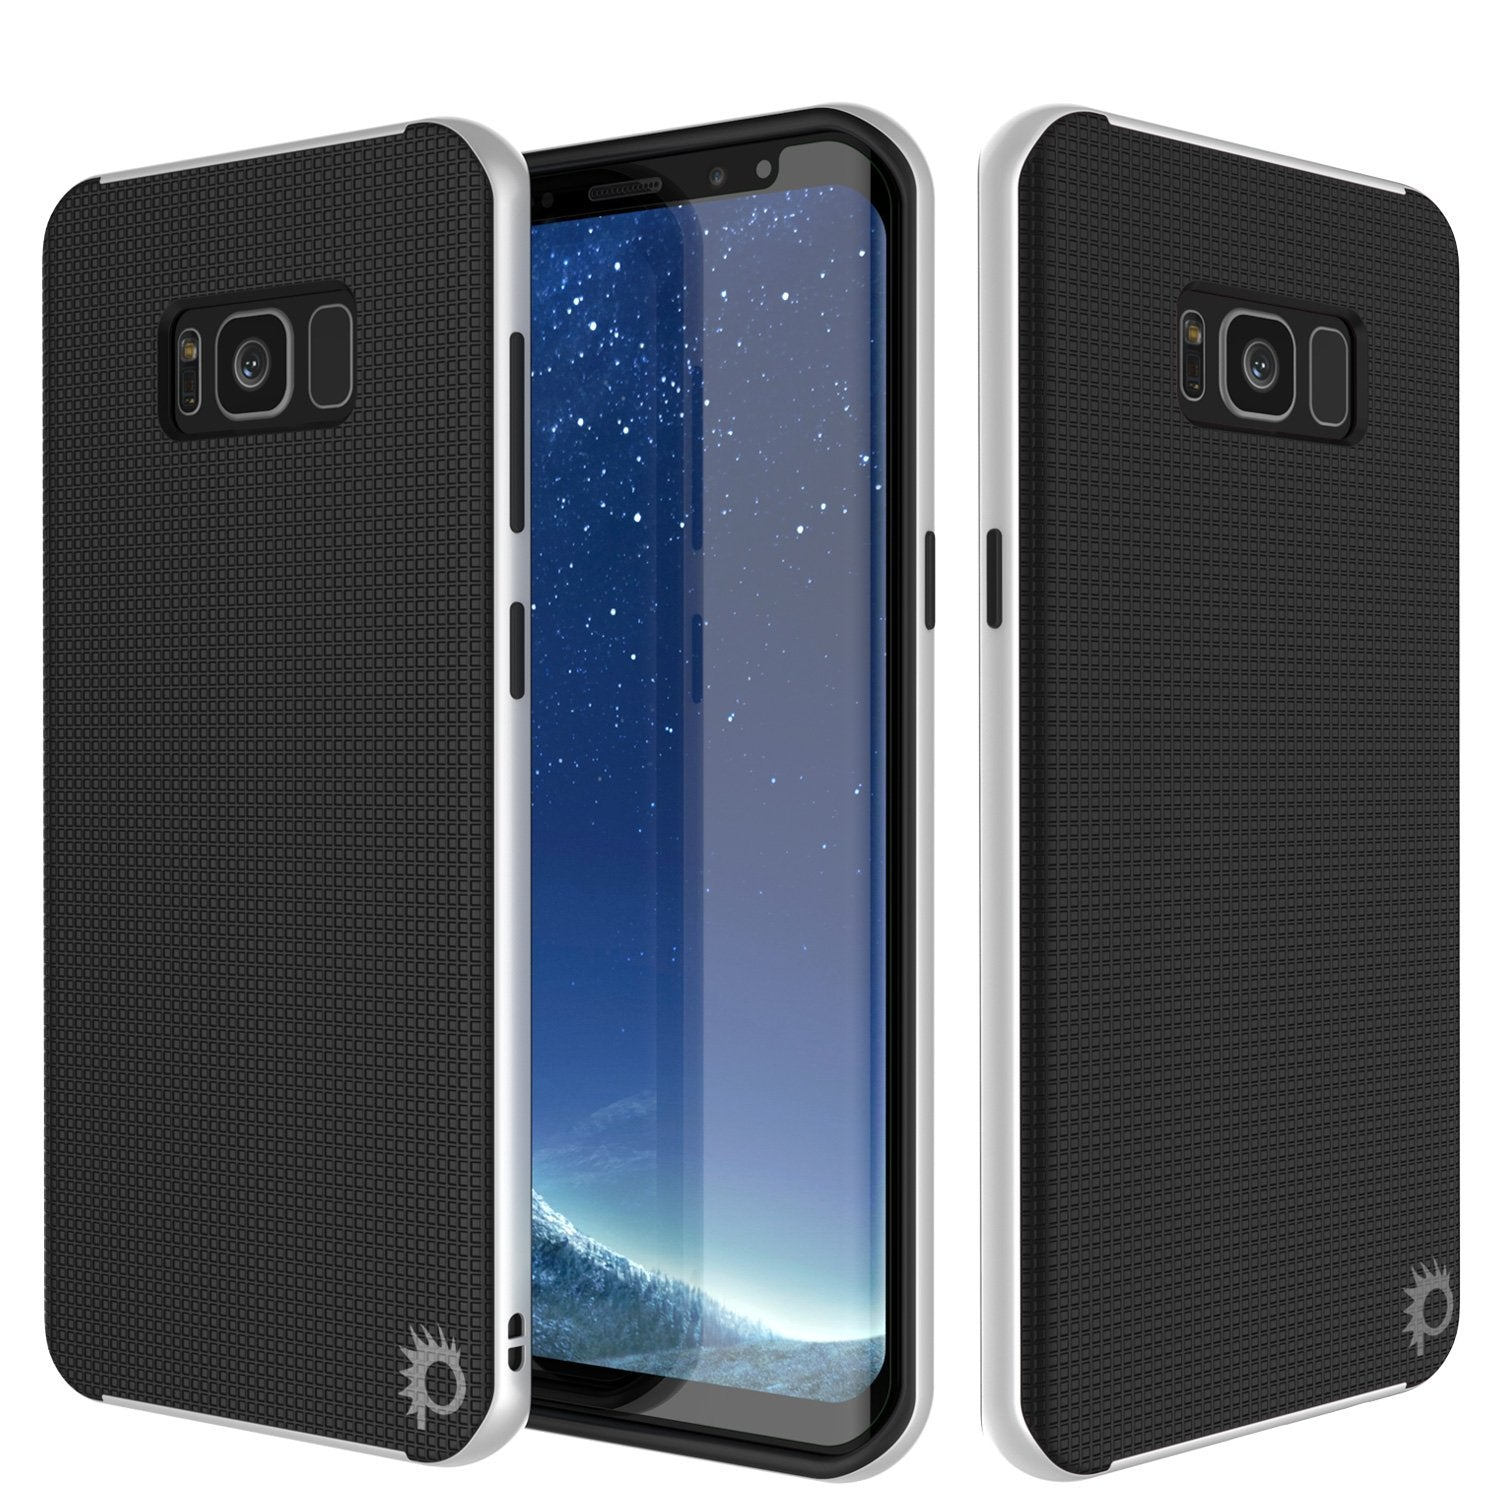 Galaxy S8 Case, PunkCase [Stealth Series] Hybrid 3-Piece Shockproof Dual Layer Cover [Non-Slip] [Soft TPU + PC Bumper] with PUNKSHIELD Screen Protector for Samsung S8 Edge [White]